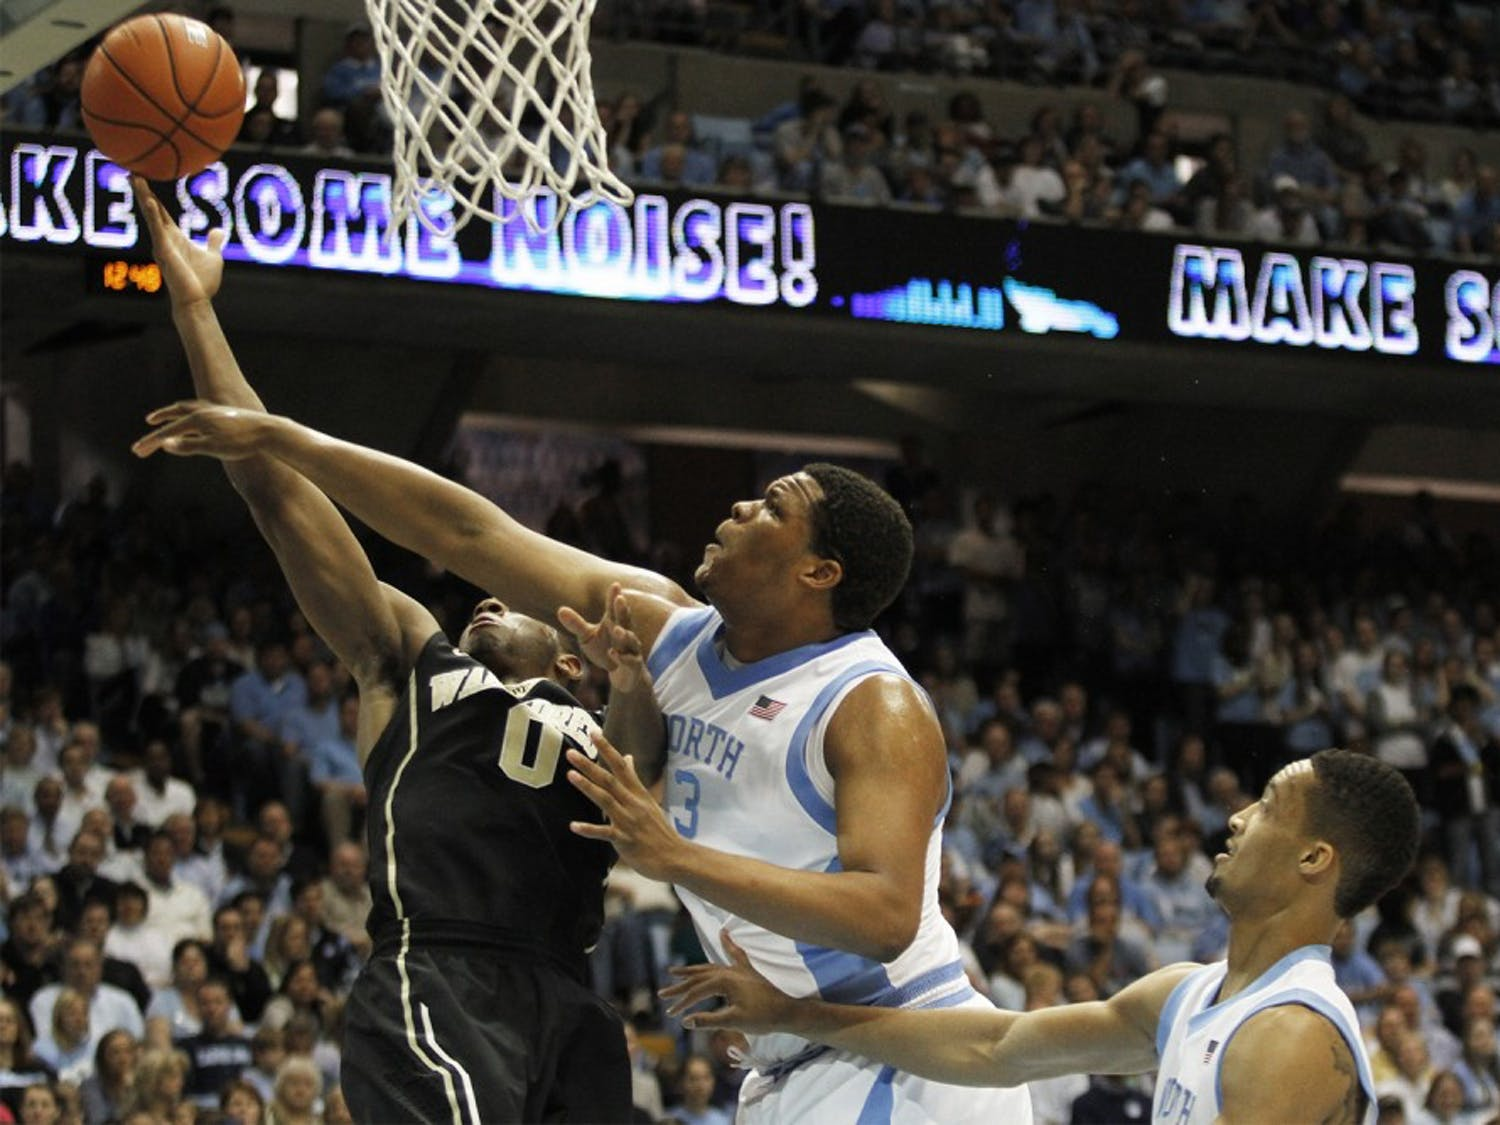 UNC Men's Basketball beat Wake Forest 105-72 on Saturday February 22.